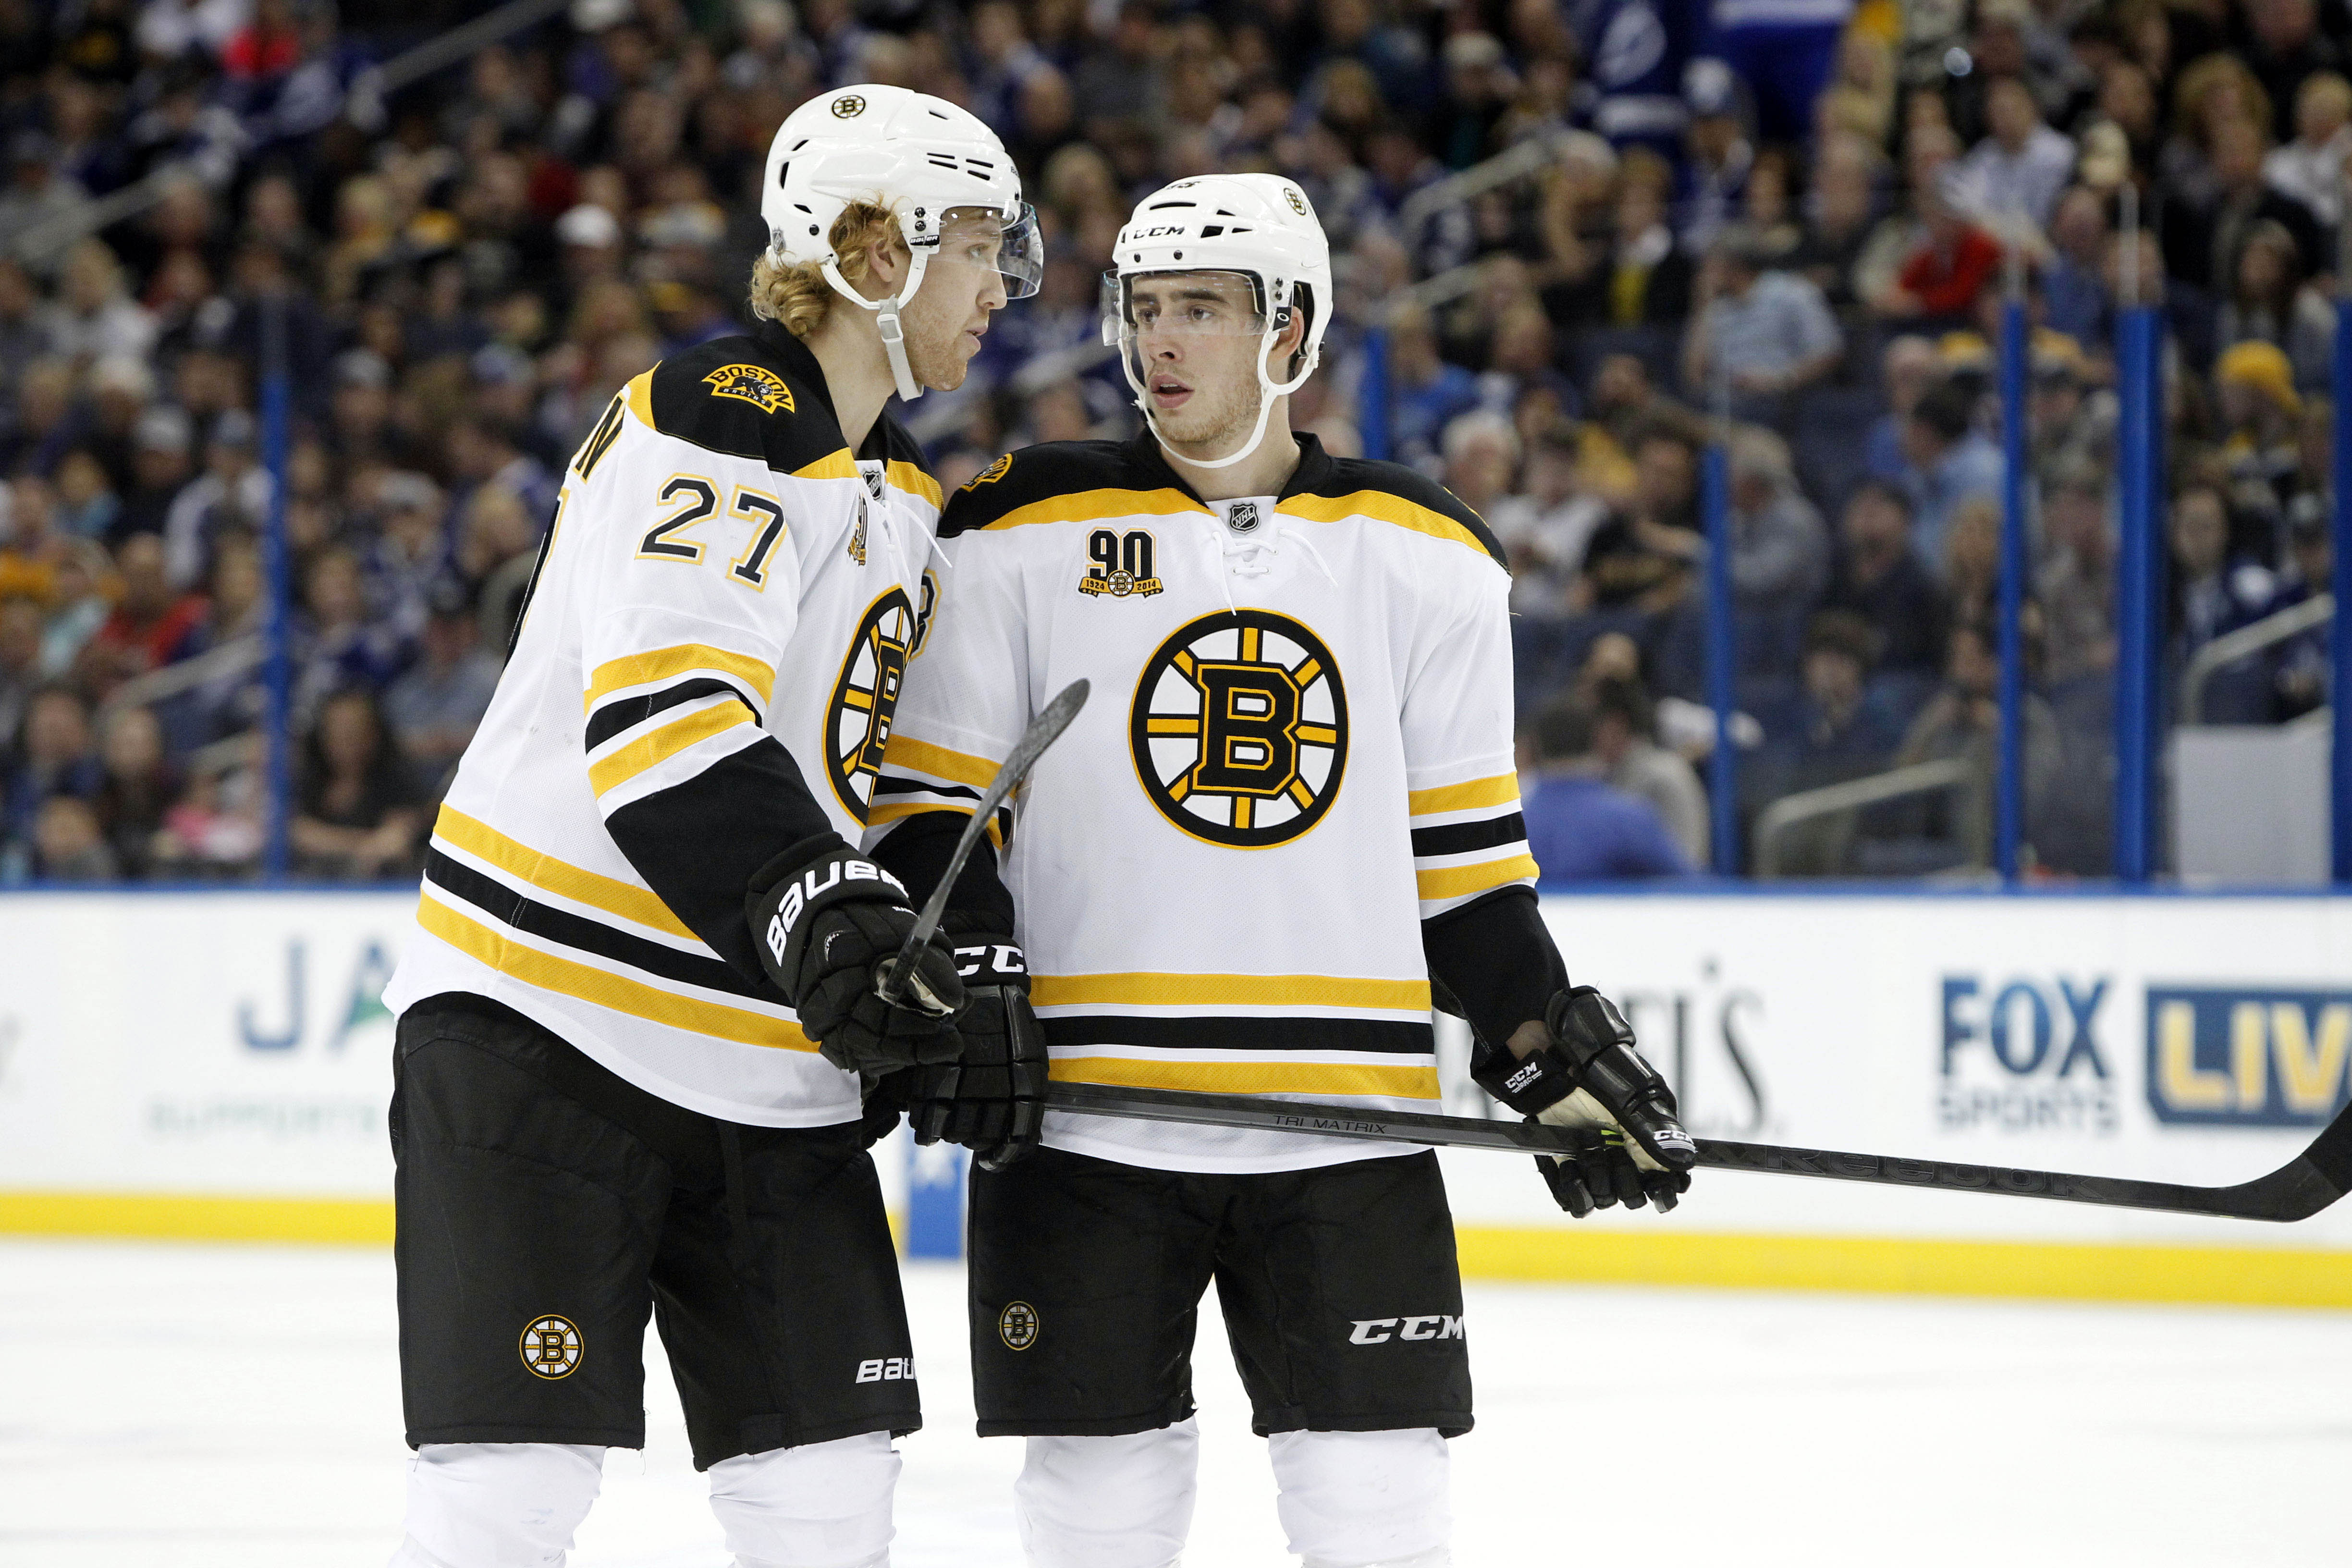 Wait, Dougie, what do you mean neither one of us will be Bruins next season?